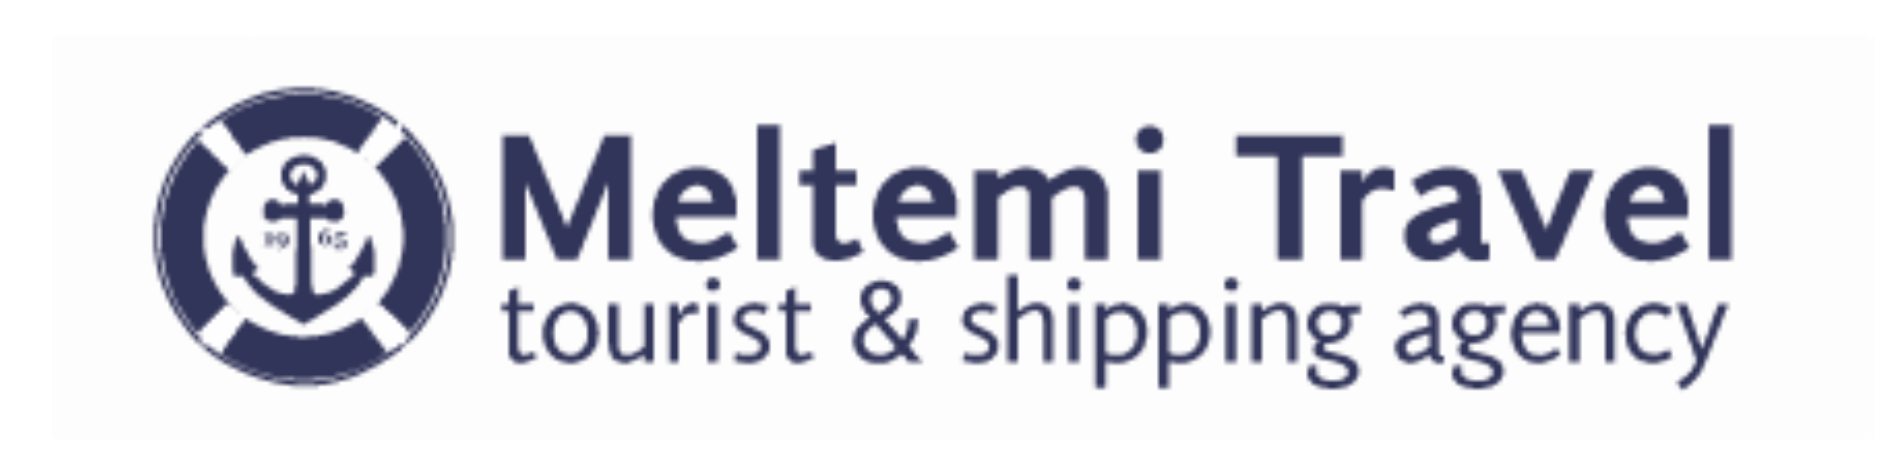 Meltemi Travel Tourist & Shipping Agency